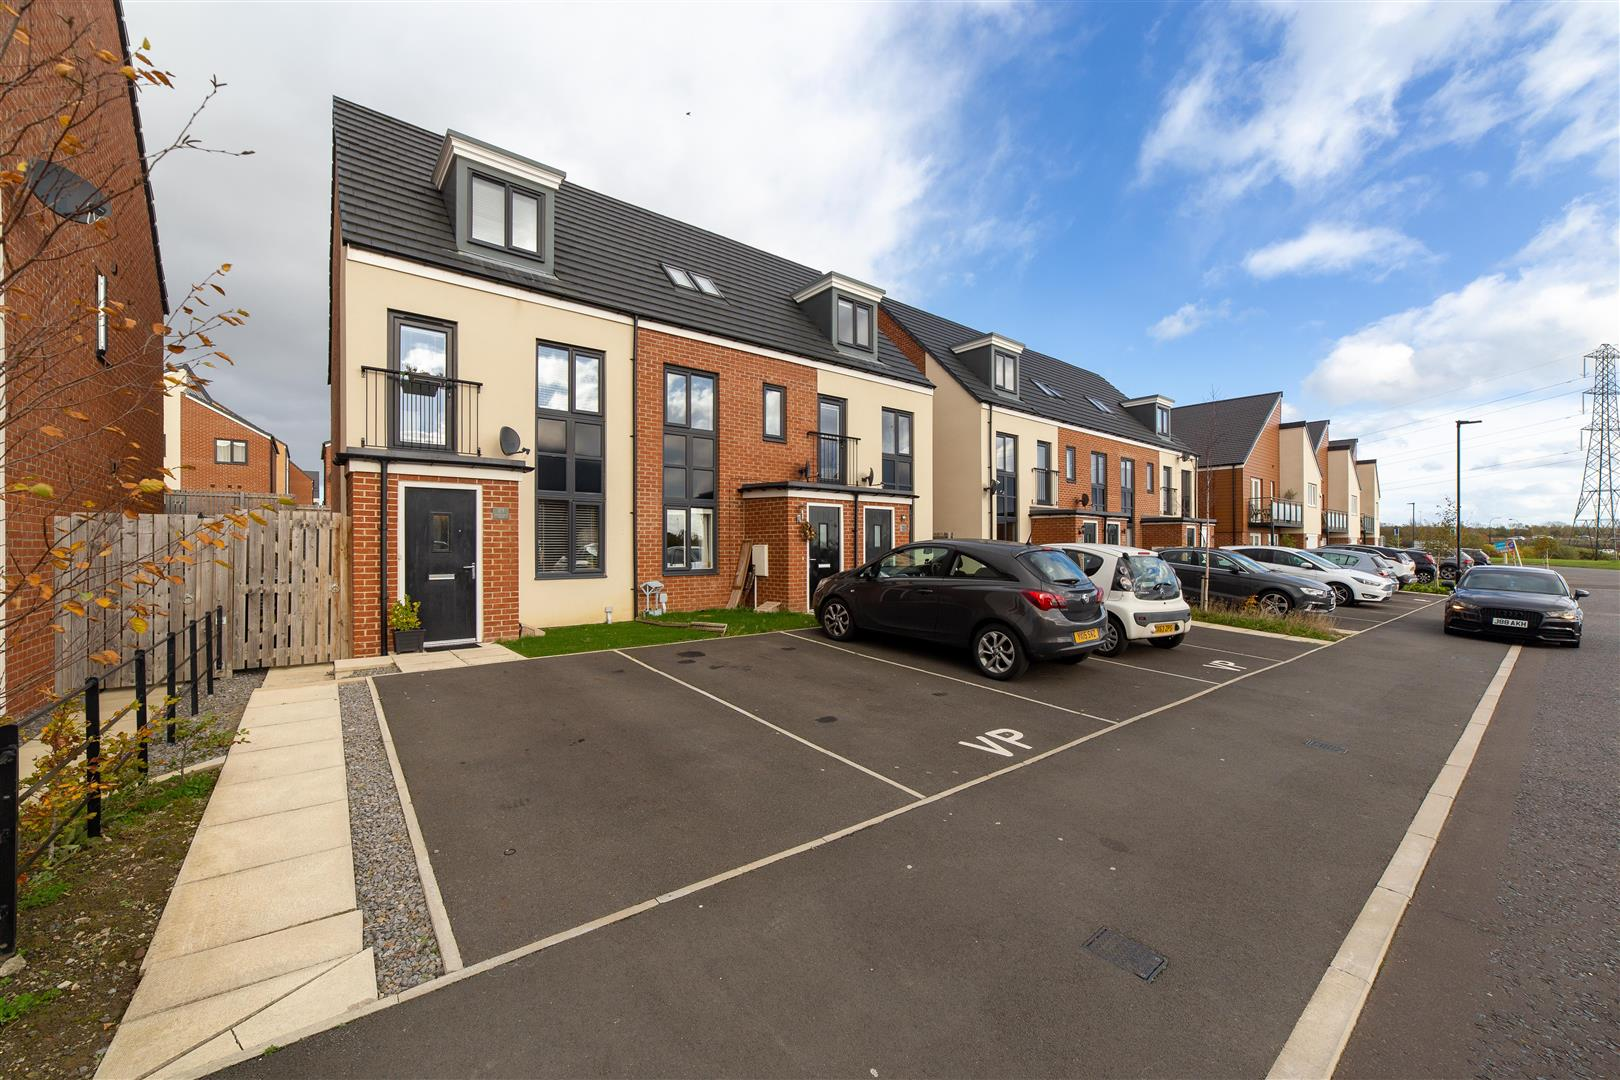 3 bed town house for sale in Newcastle Upon Tyne, NE13 9DR, NE13